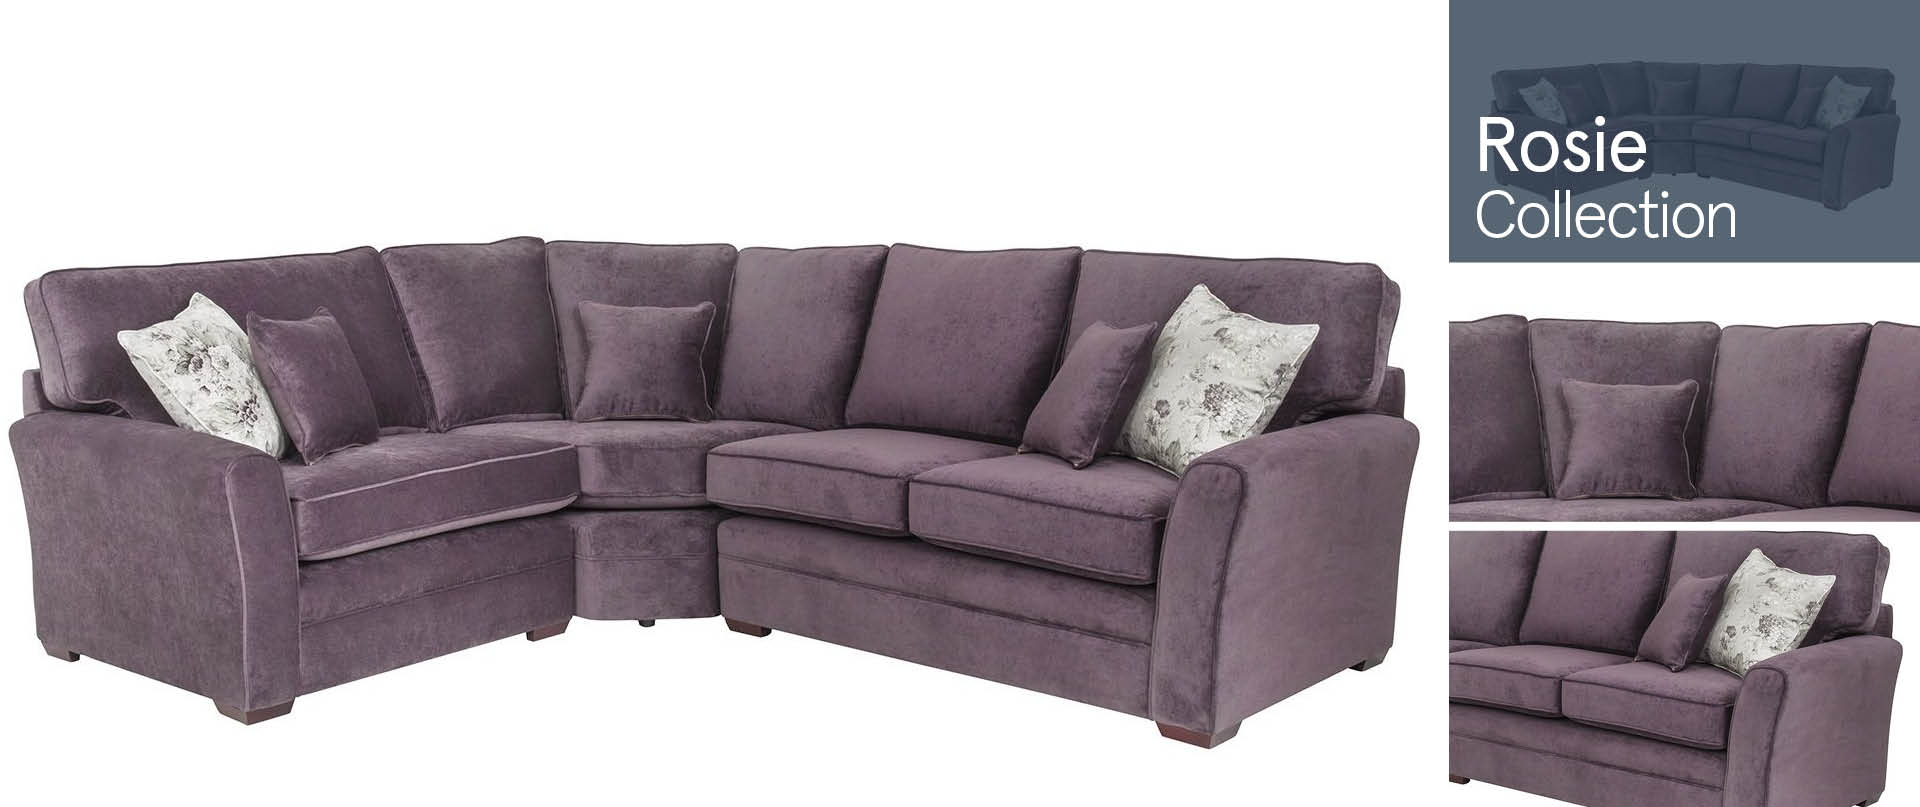 Rosie All Fabric Sofa Ranges